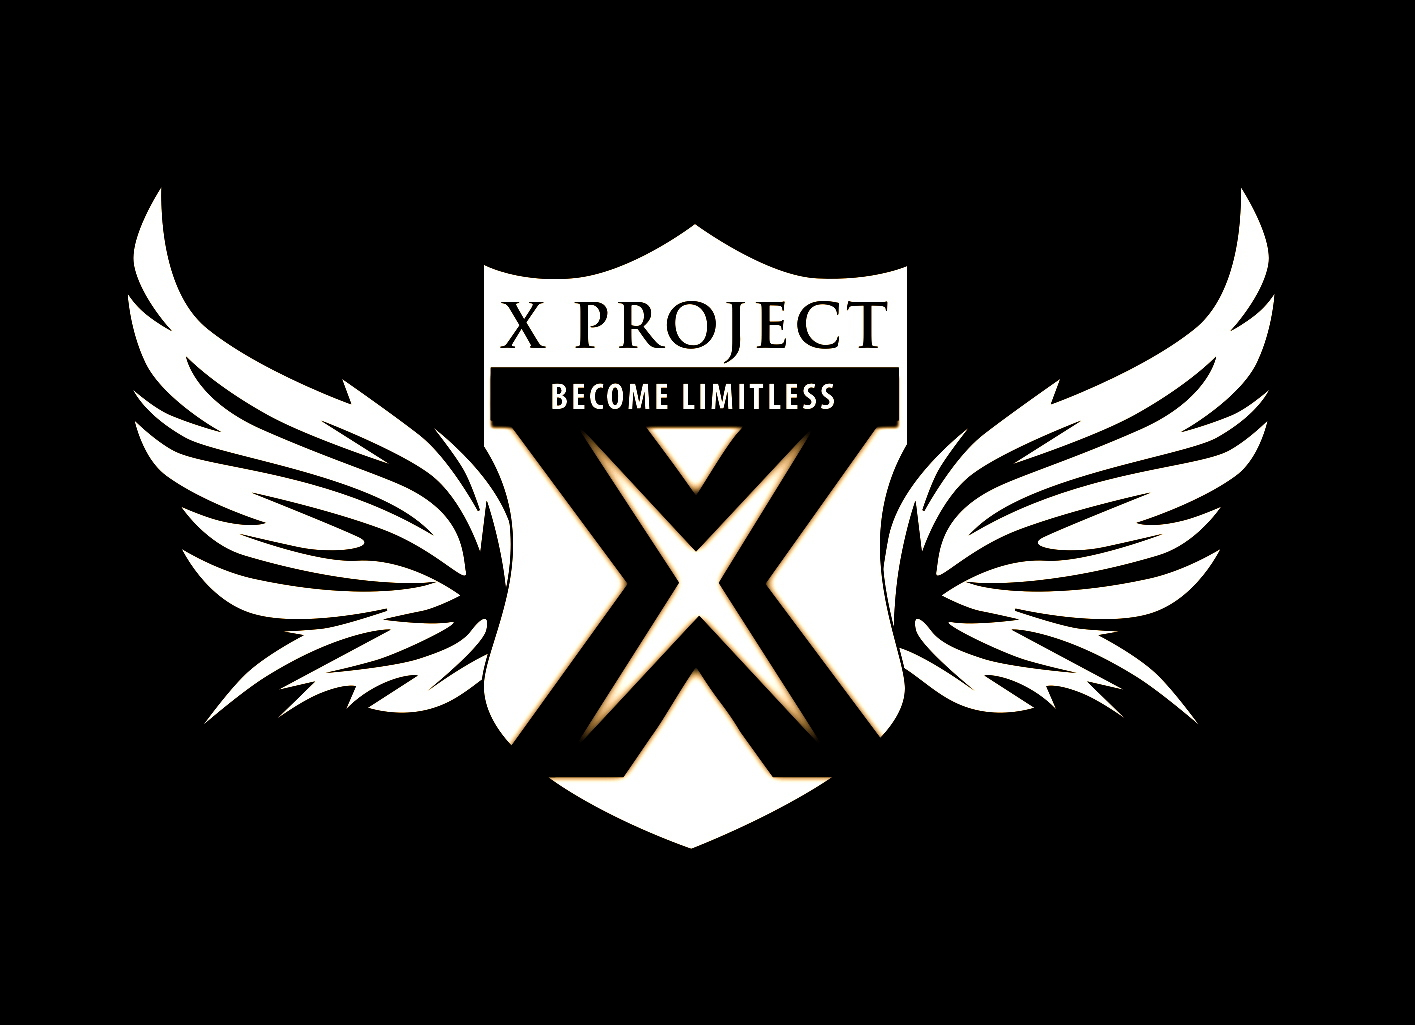 x-project image 5